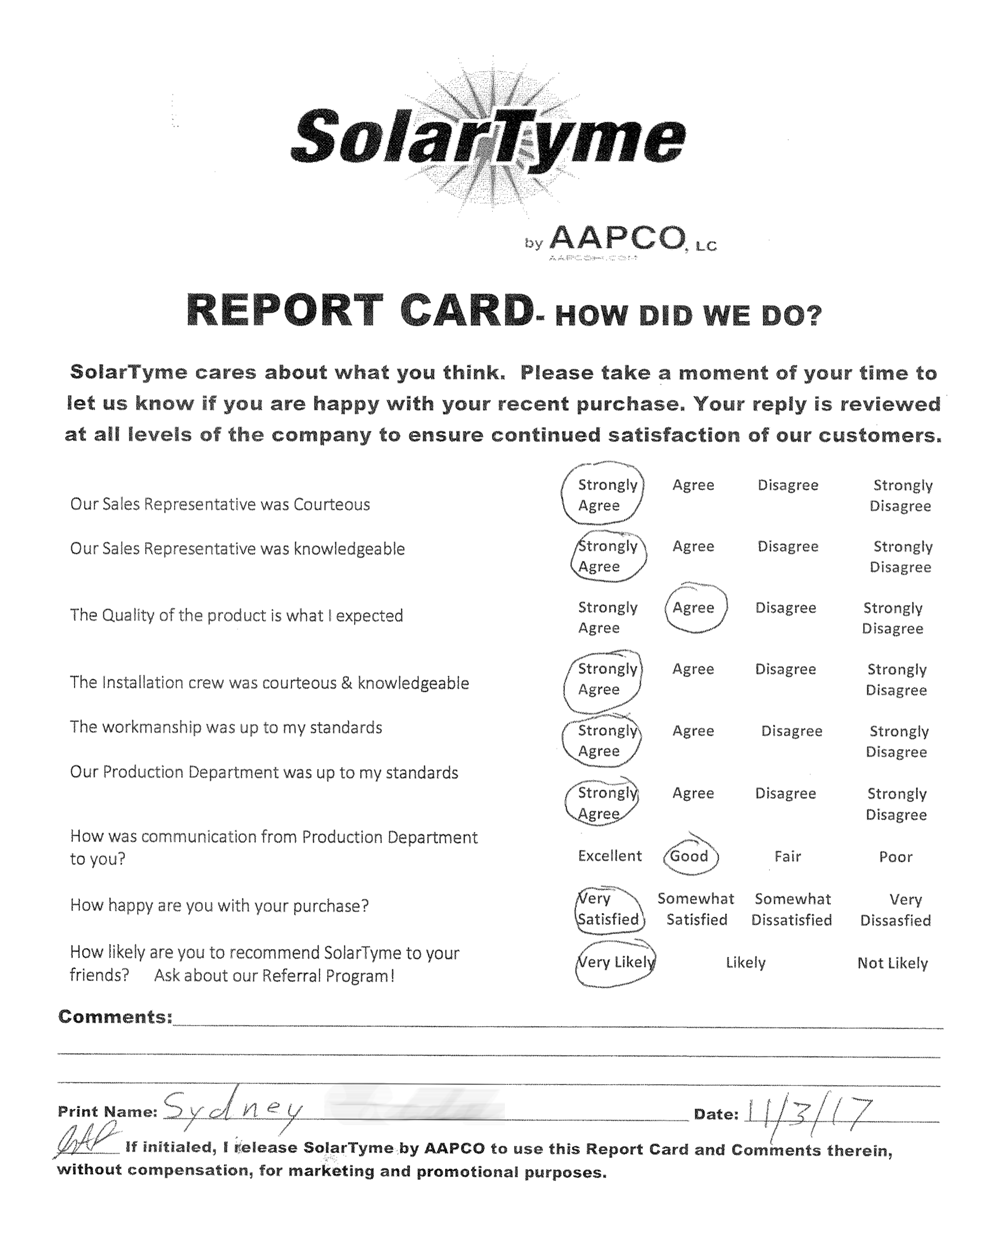 Sydney R's SolarTyme Review